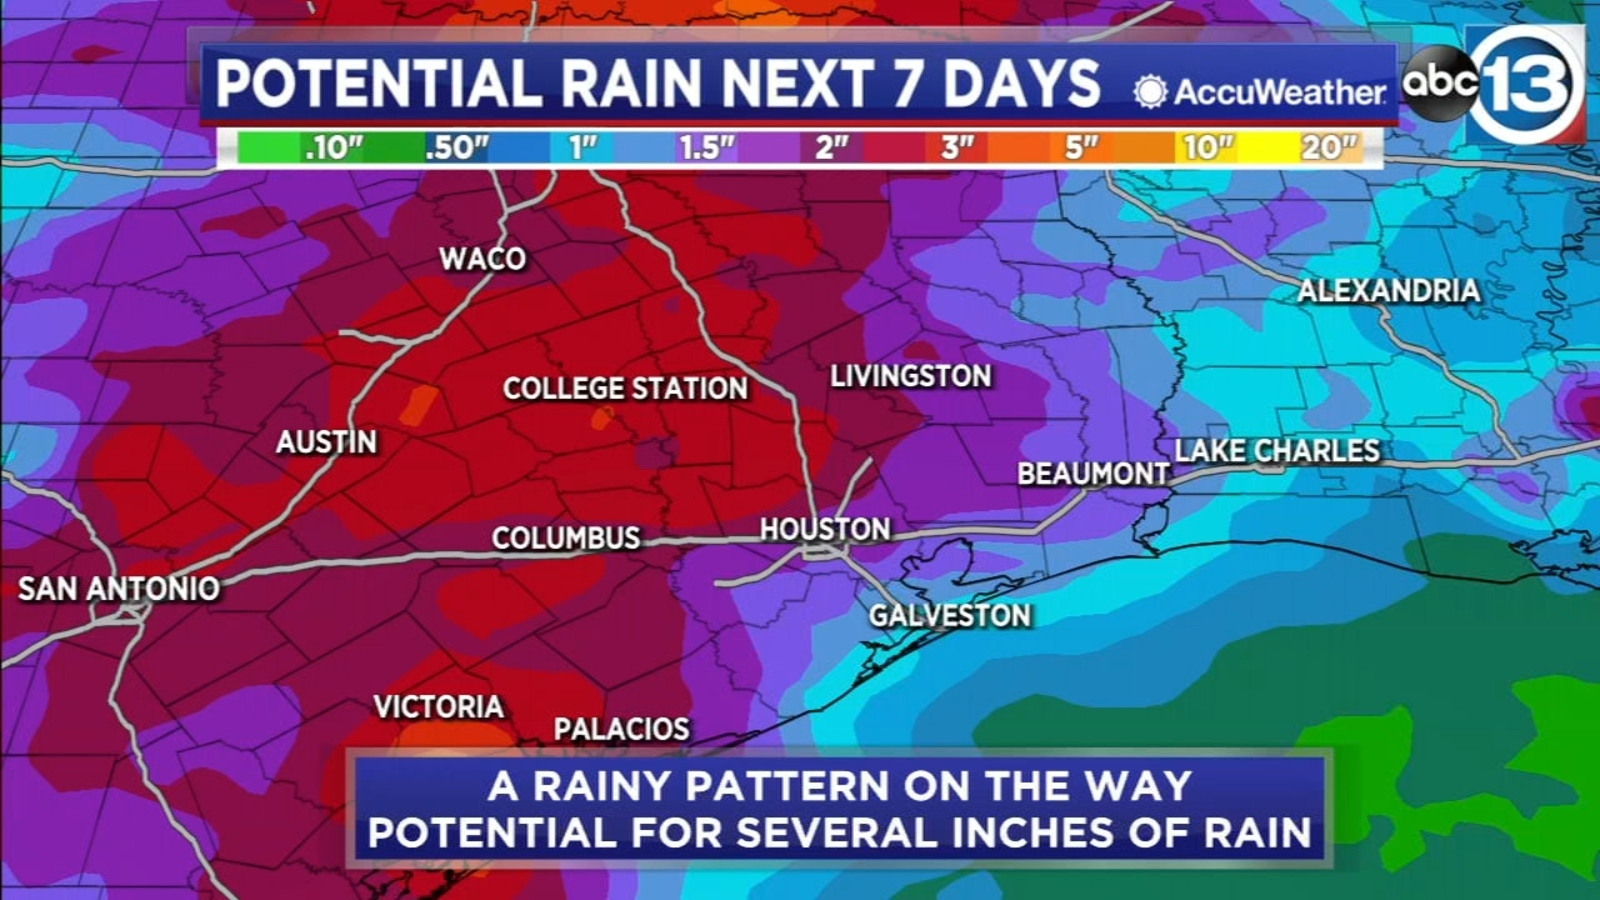 Enjoy the dry weather because it all changes this weekend